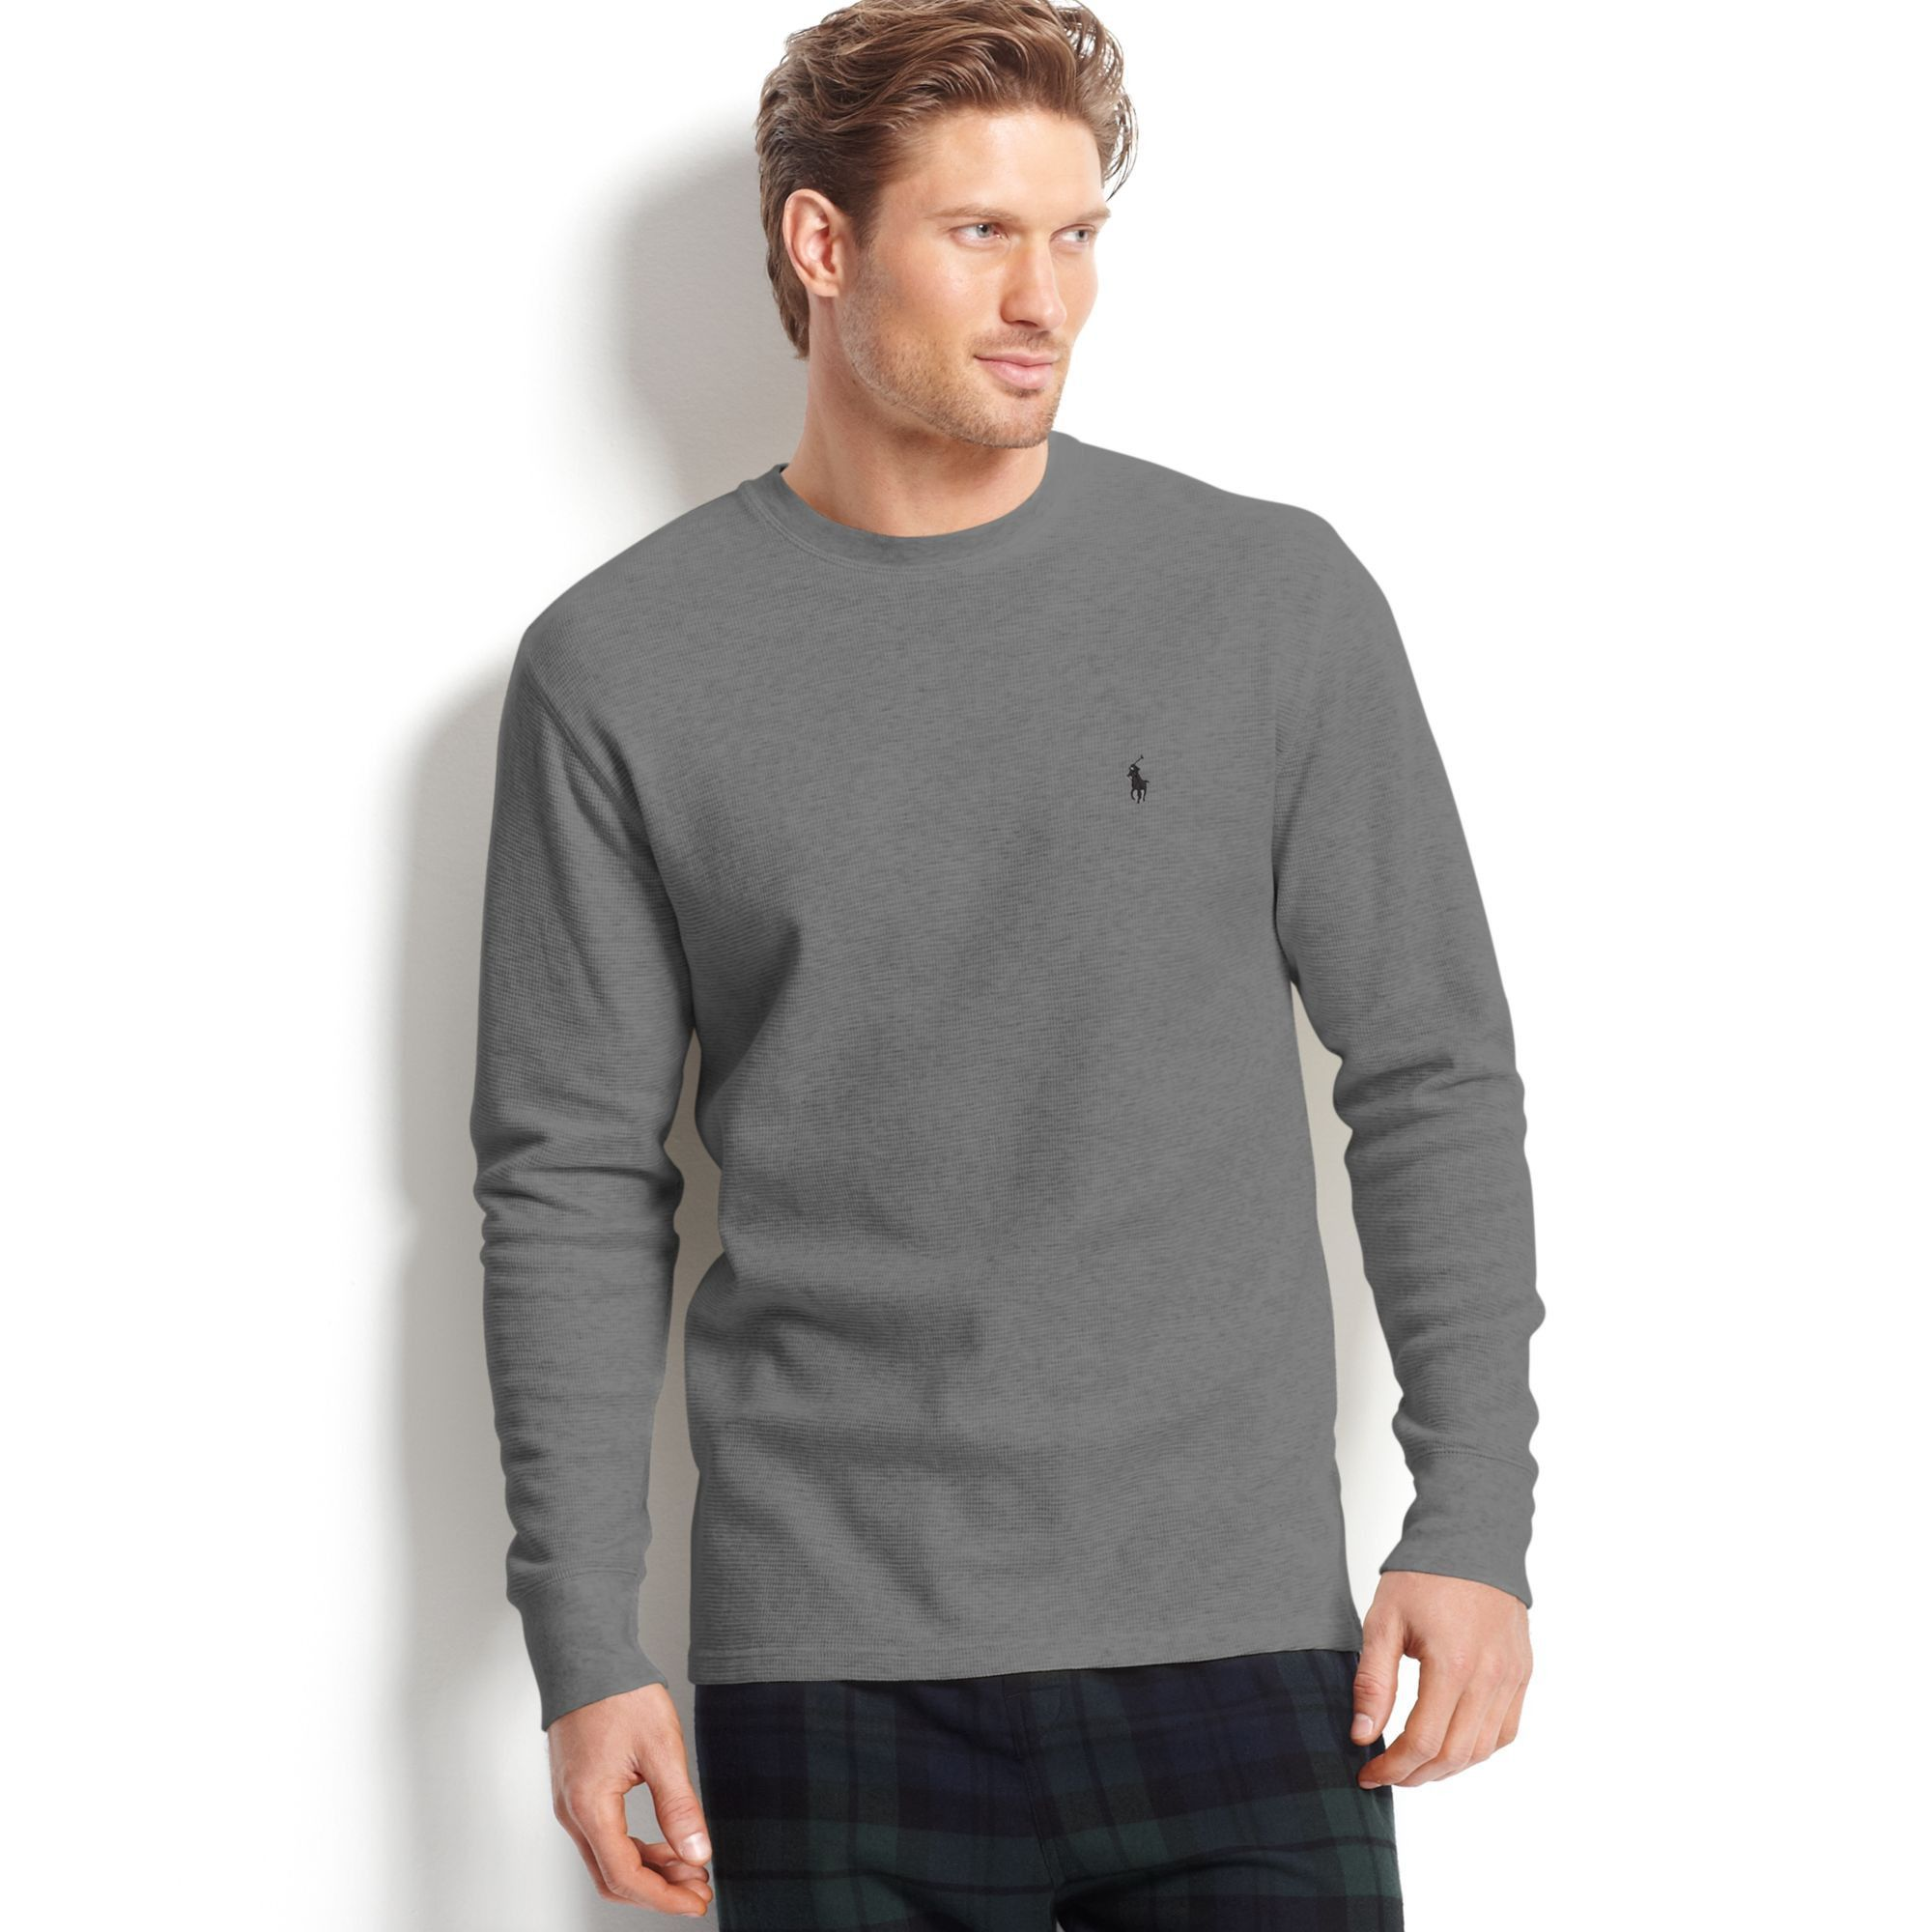 3e39b53a Polo Ralph Lauren Waffle Knit Crew Neck Top, L, Charcoal Heather ...